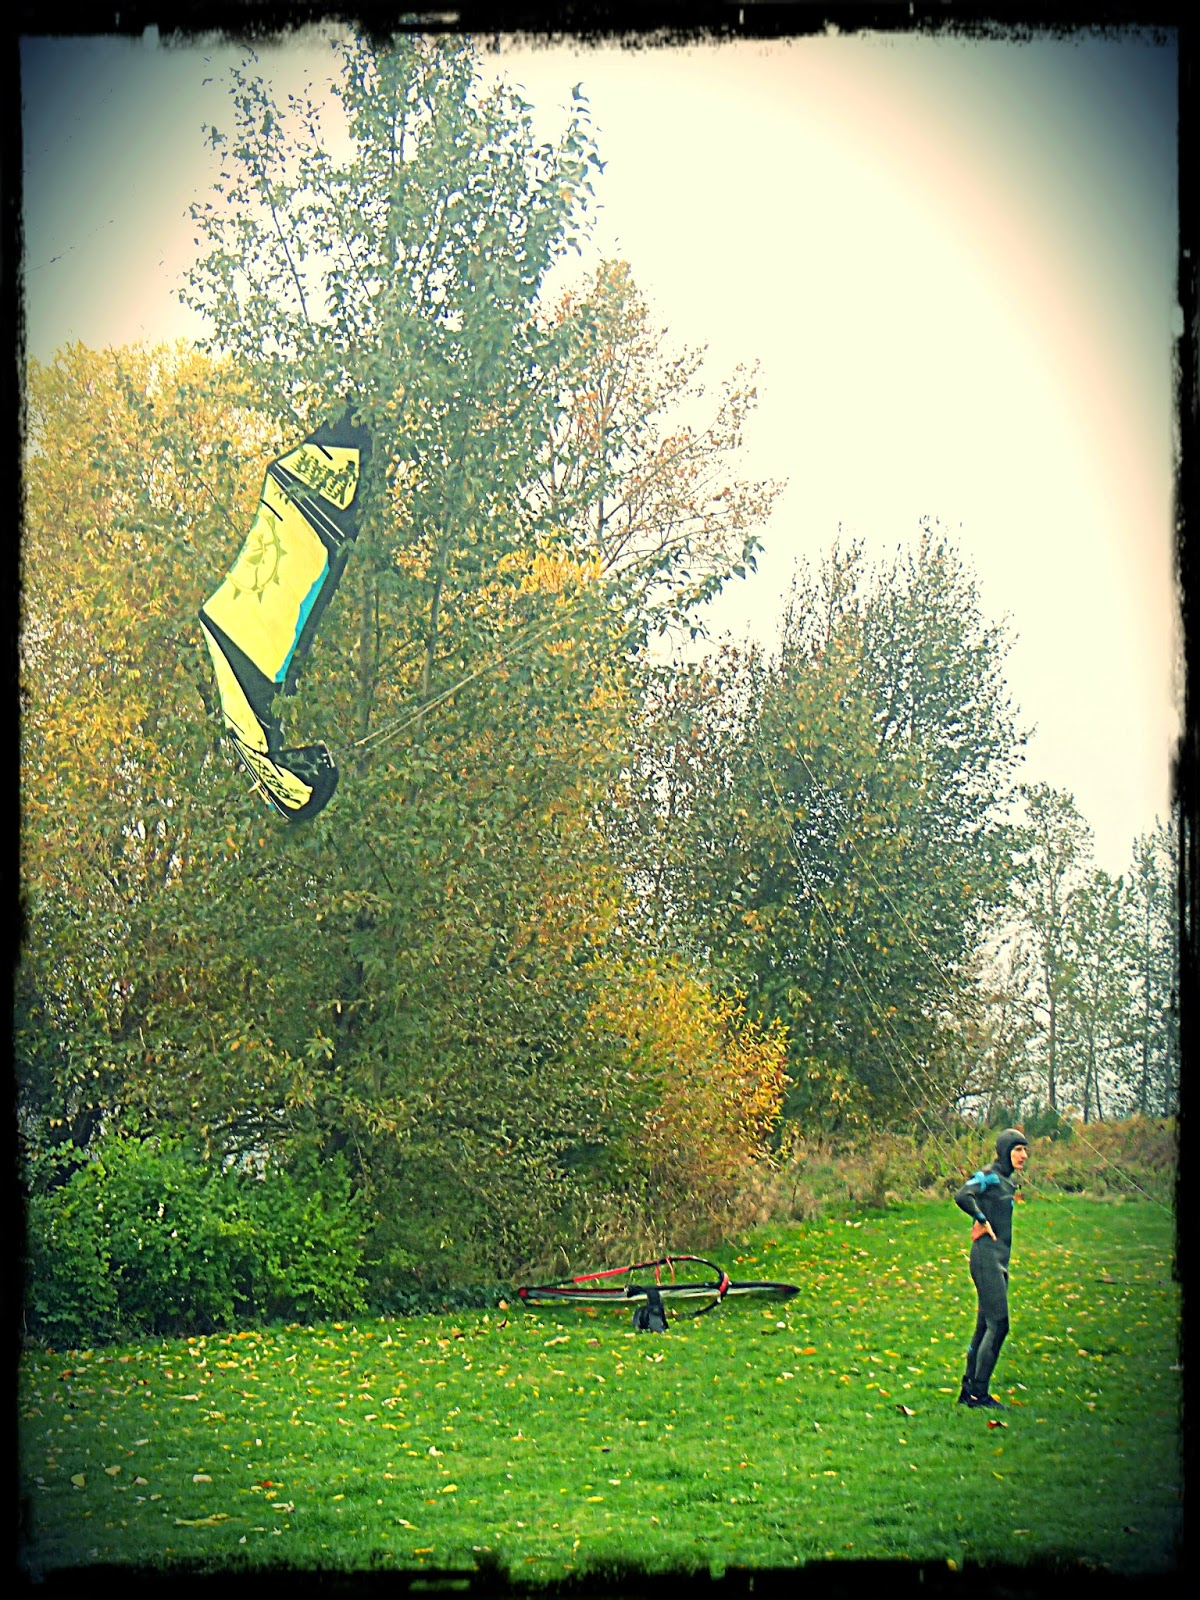 Kiteboarding at Magnuson Park in Seattle